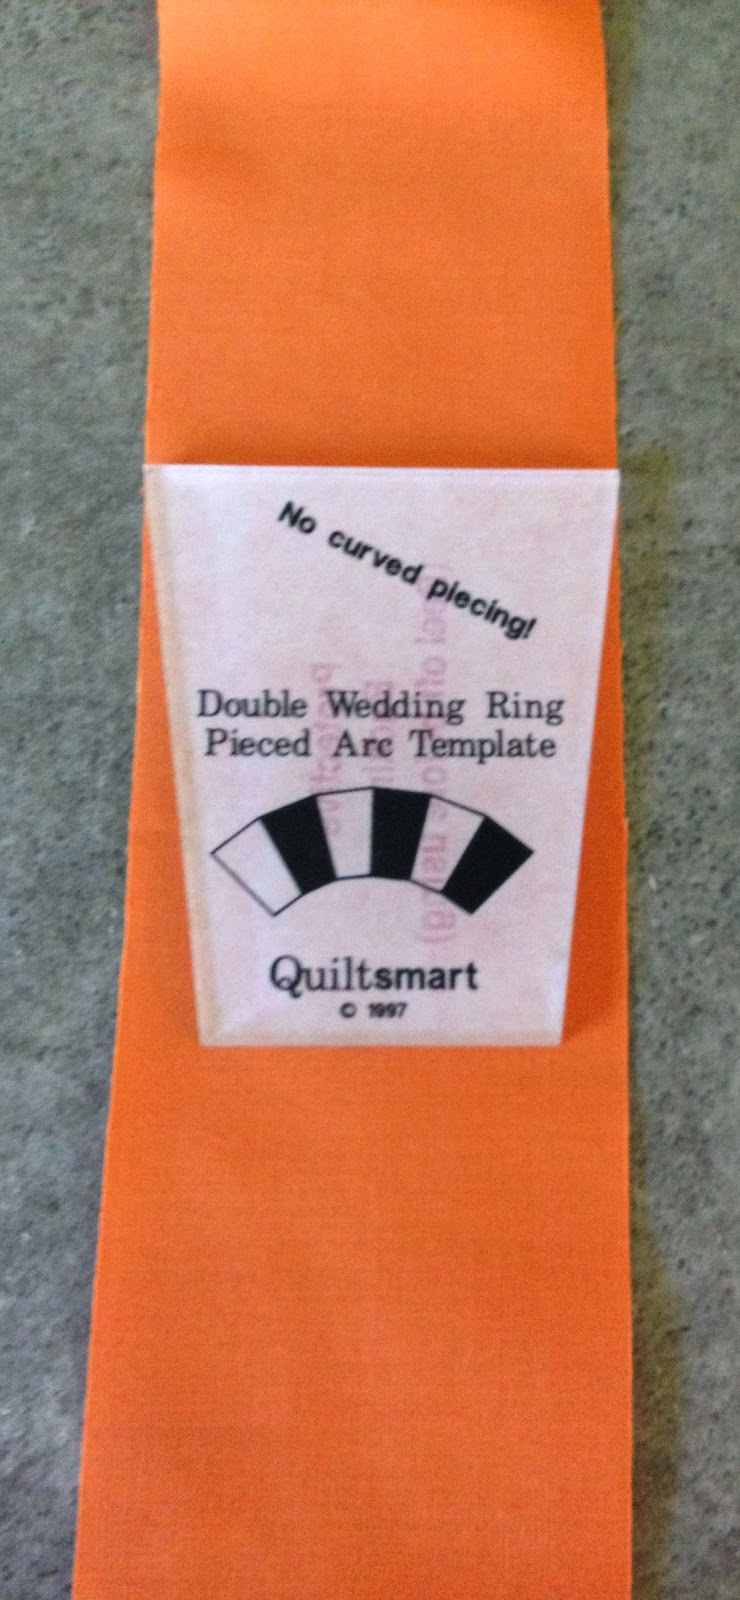 quiltsmart double wedding ring template on jelly roll vertically